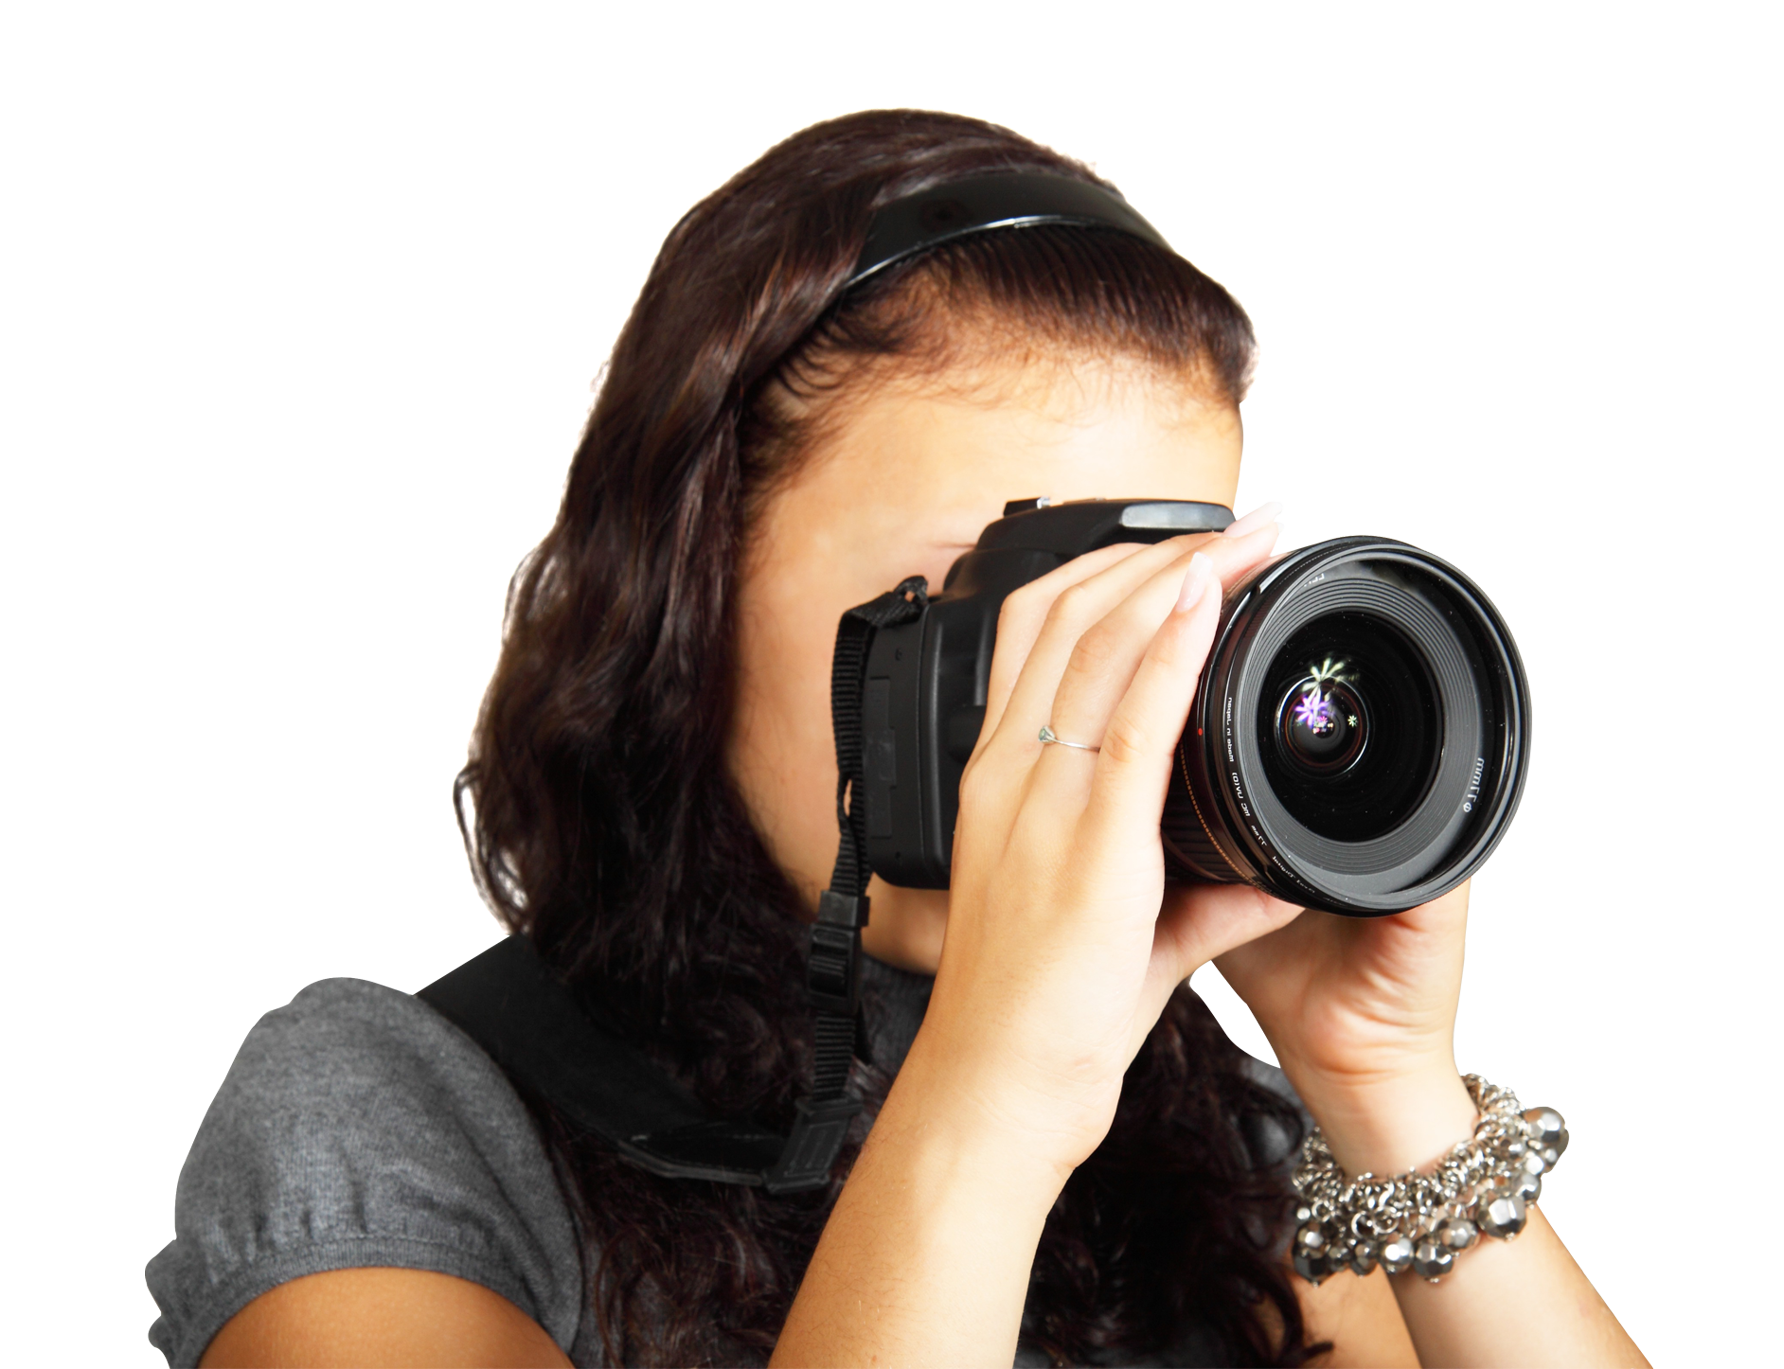 Young female taking photos. Photographer clipart woman photographer